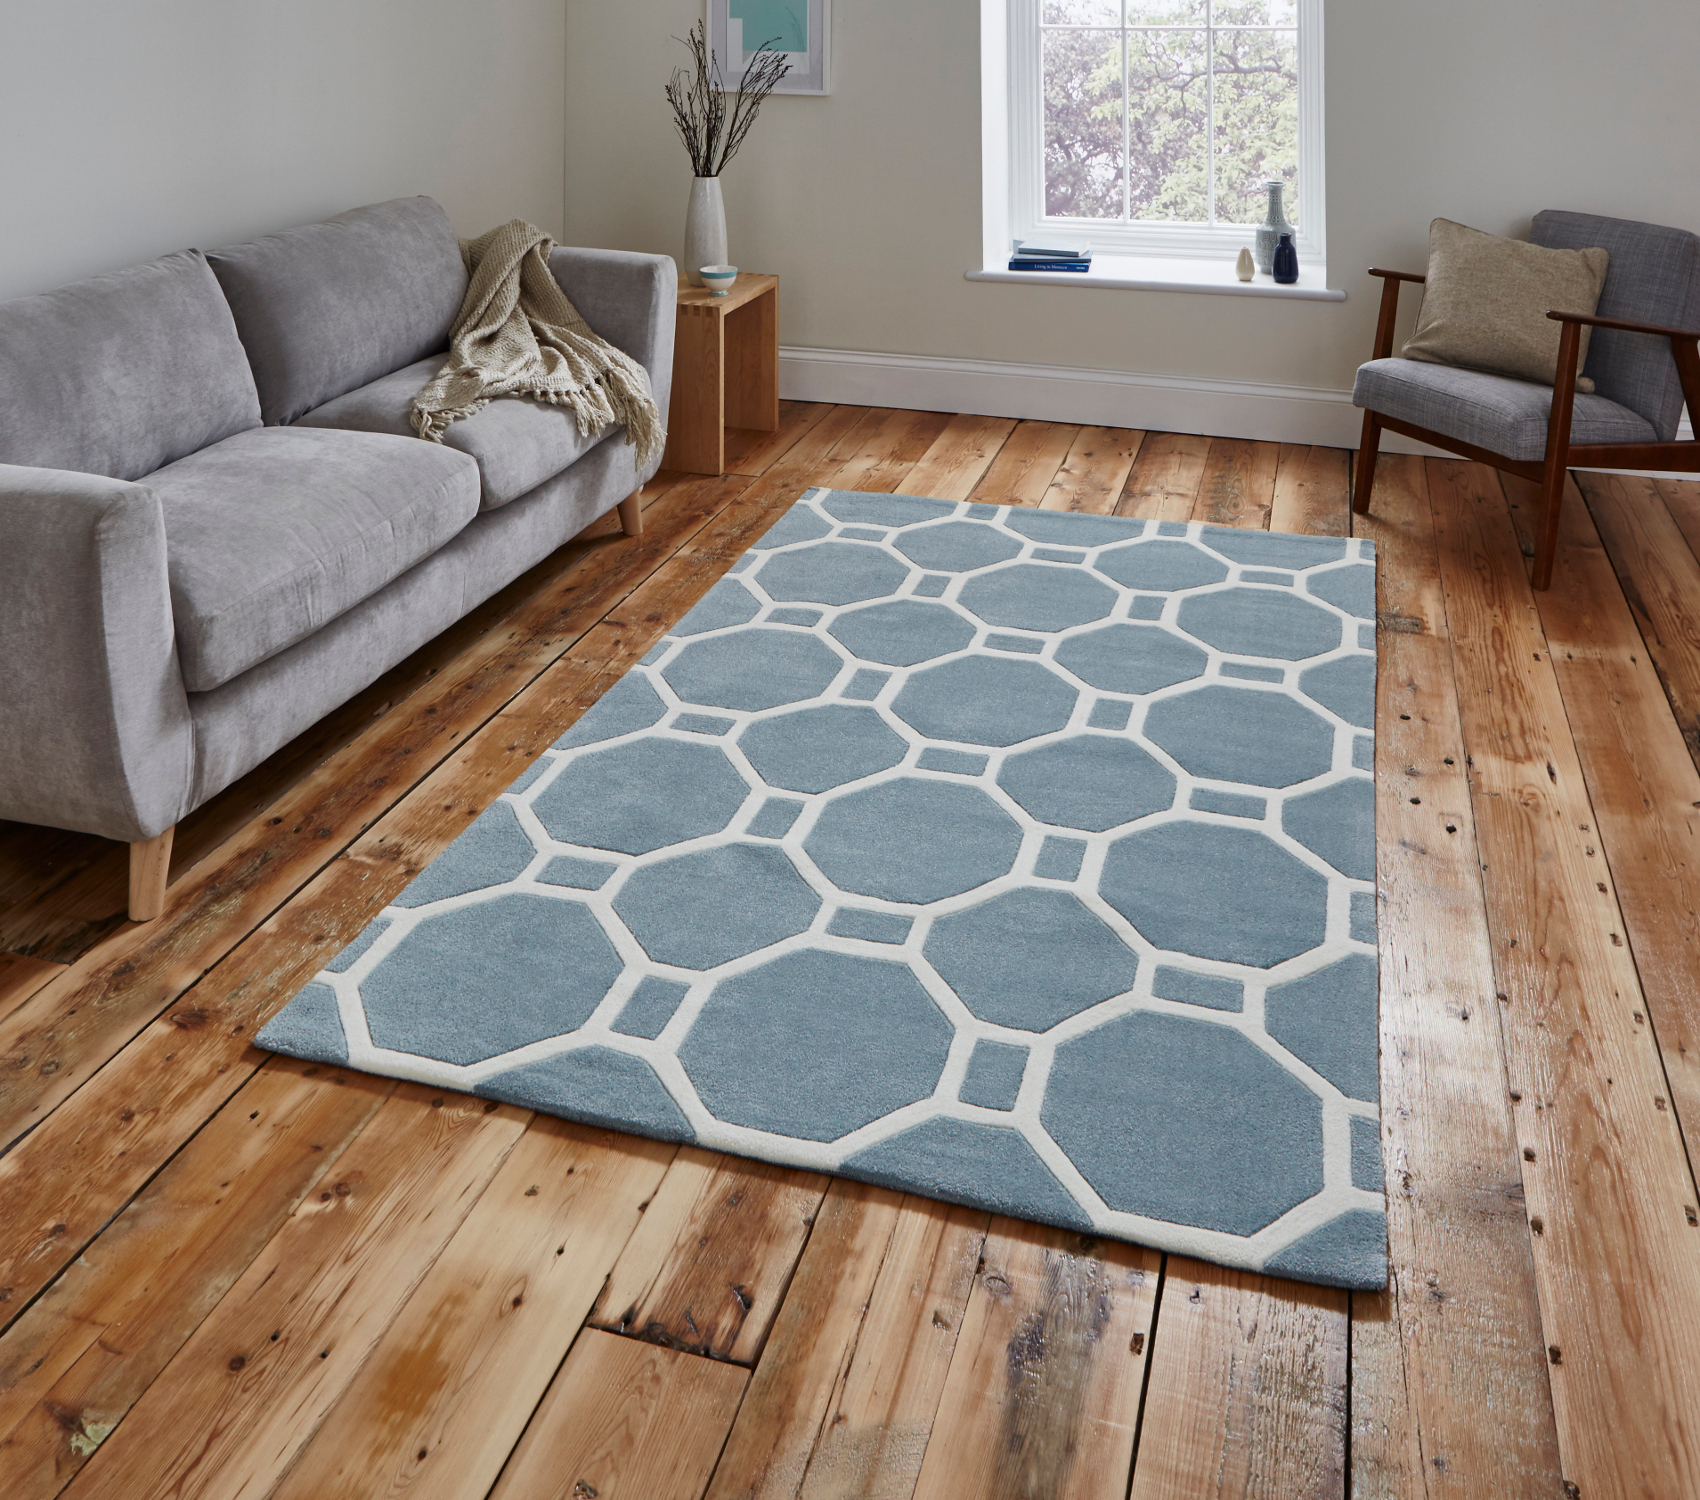 safavieh shipping dark garden home product light blue overstock x adirondack rug today vintage free